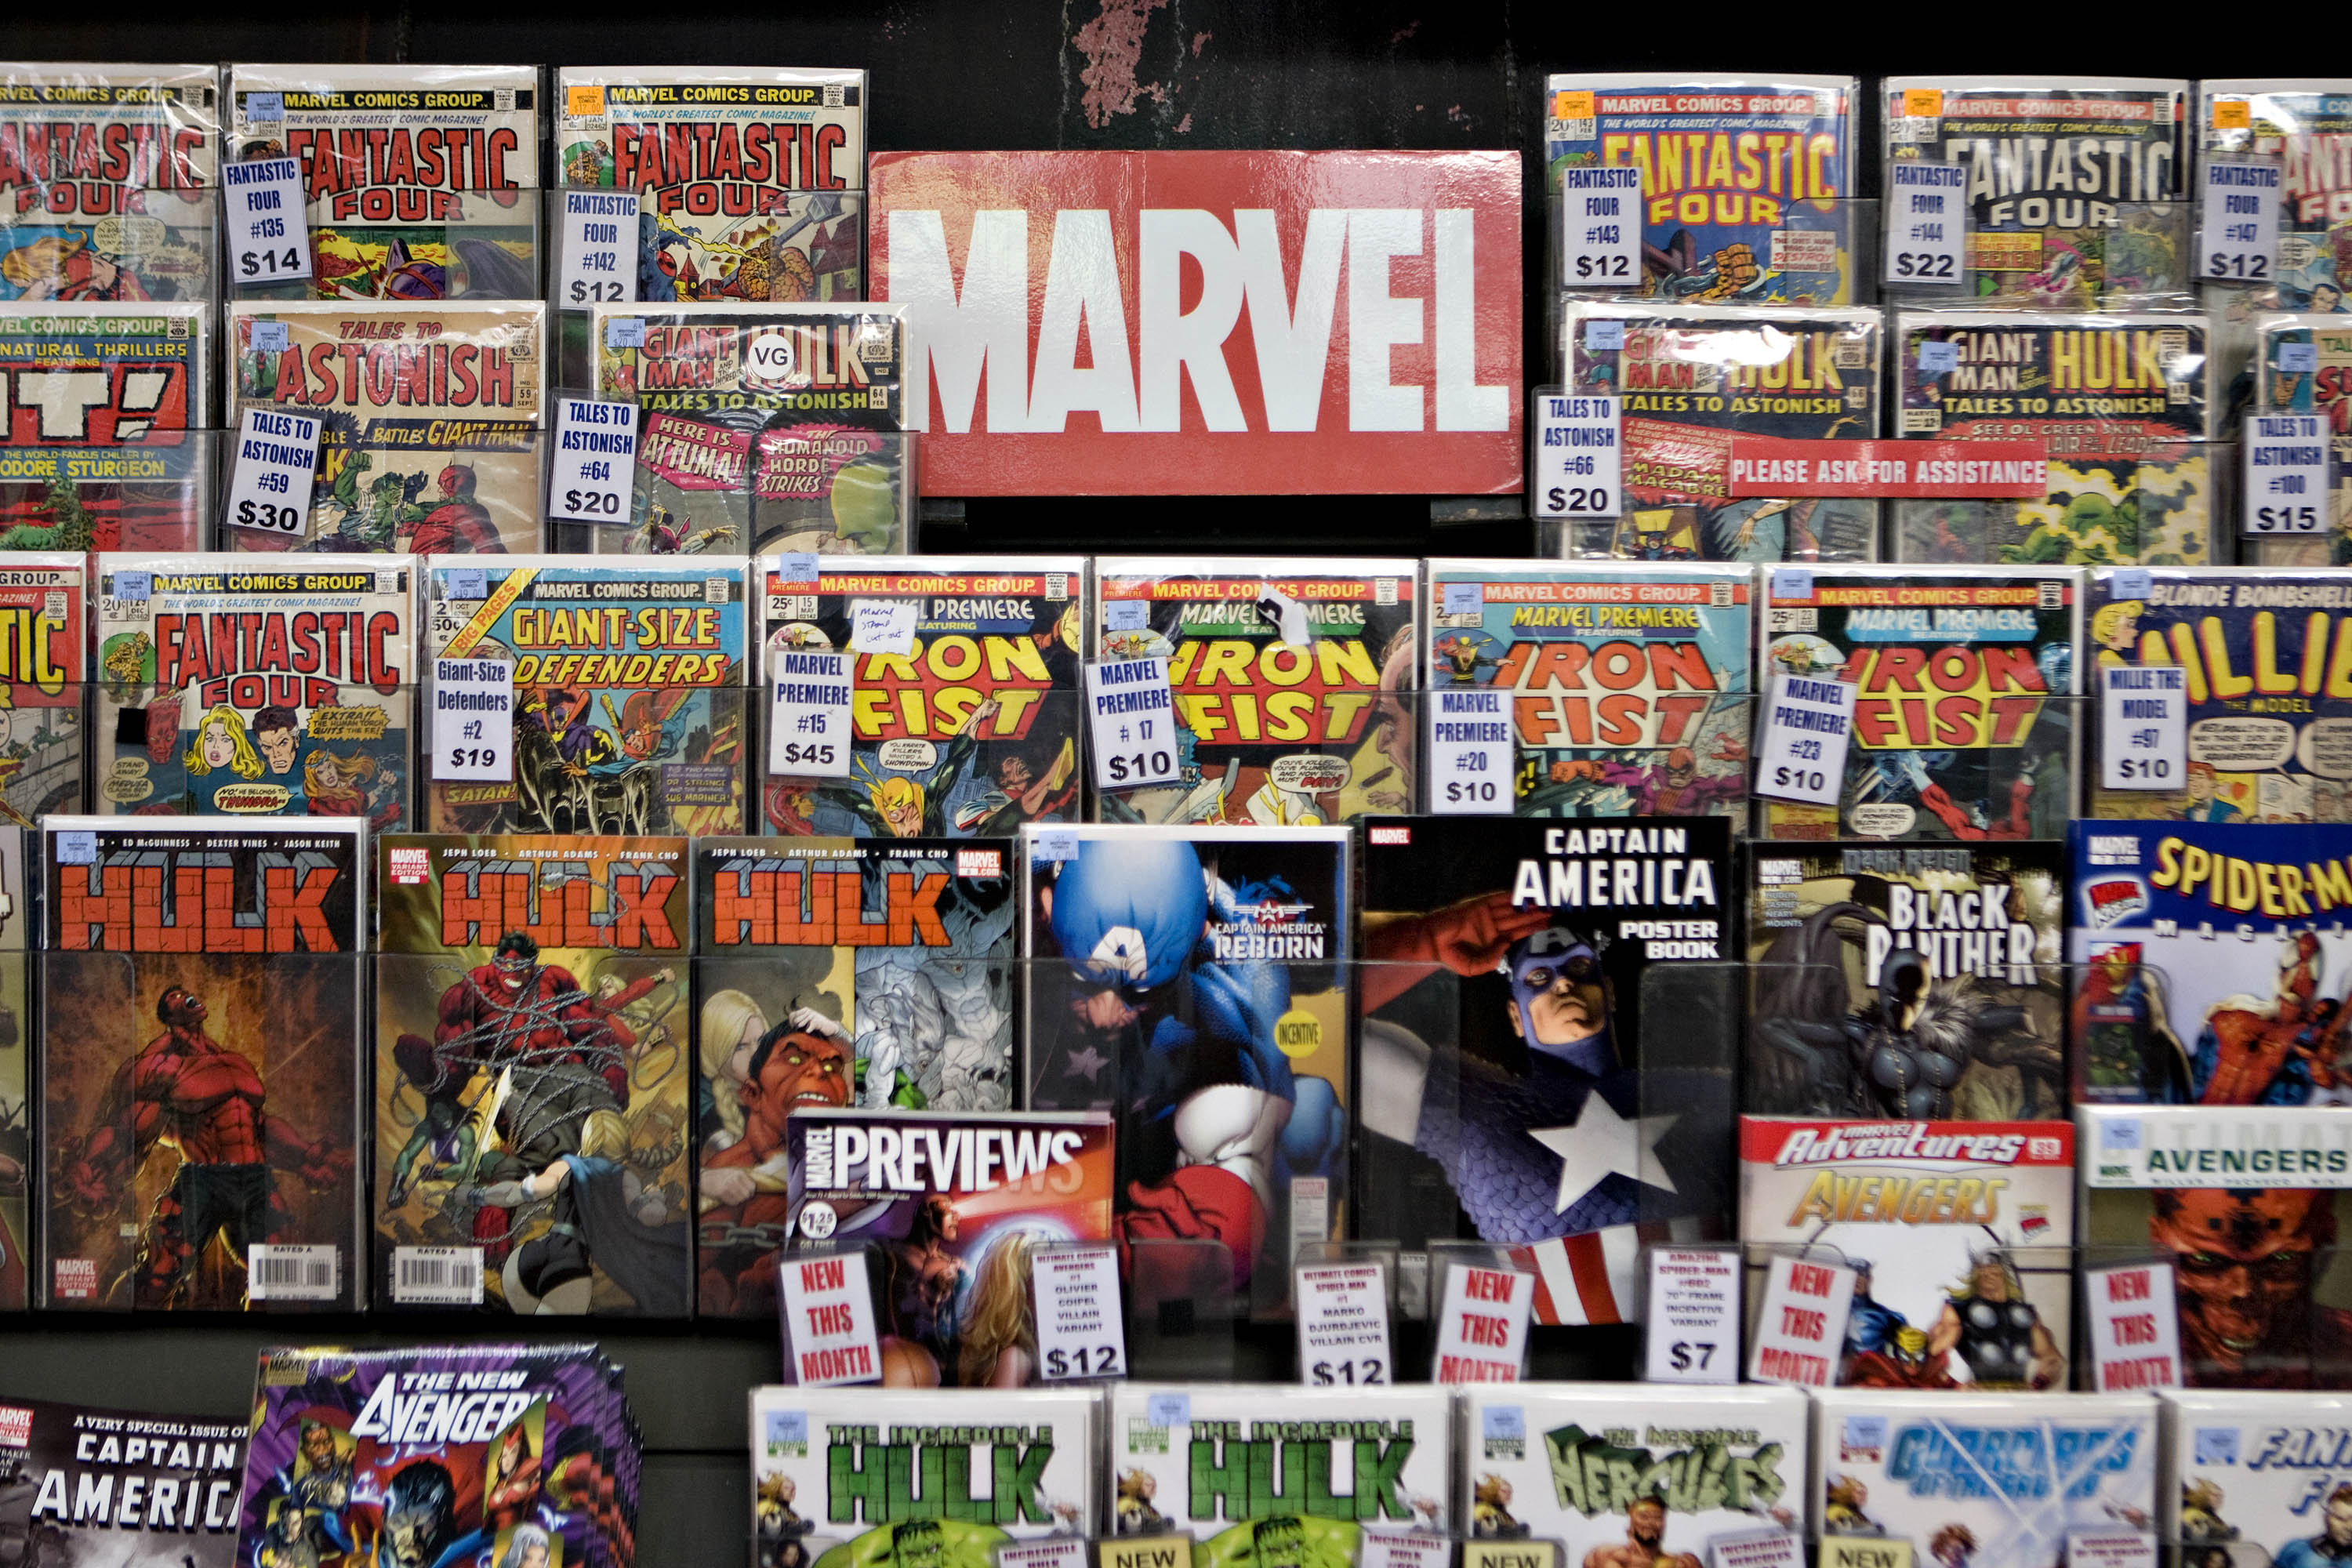 Marvel comics sit on display at Midtown Comics in New York, U.S., on Aug. 31, 2009.